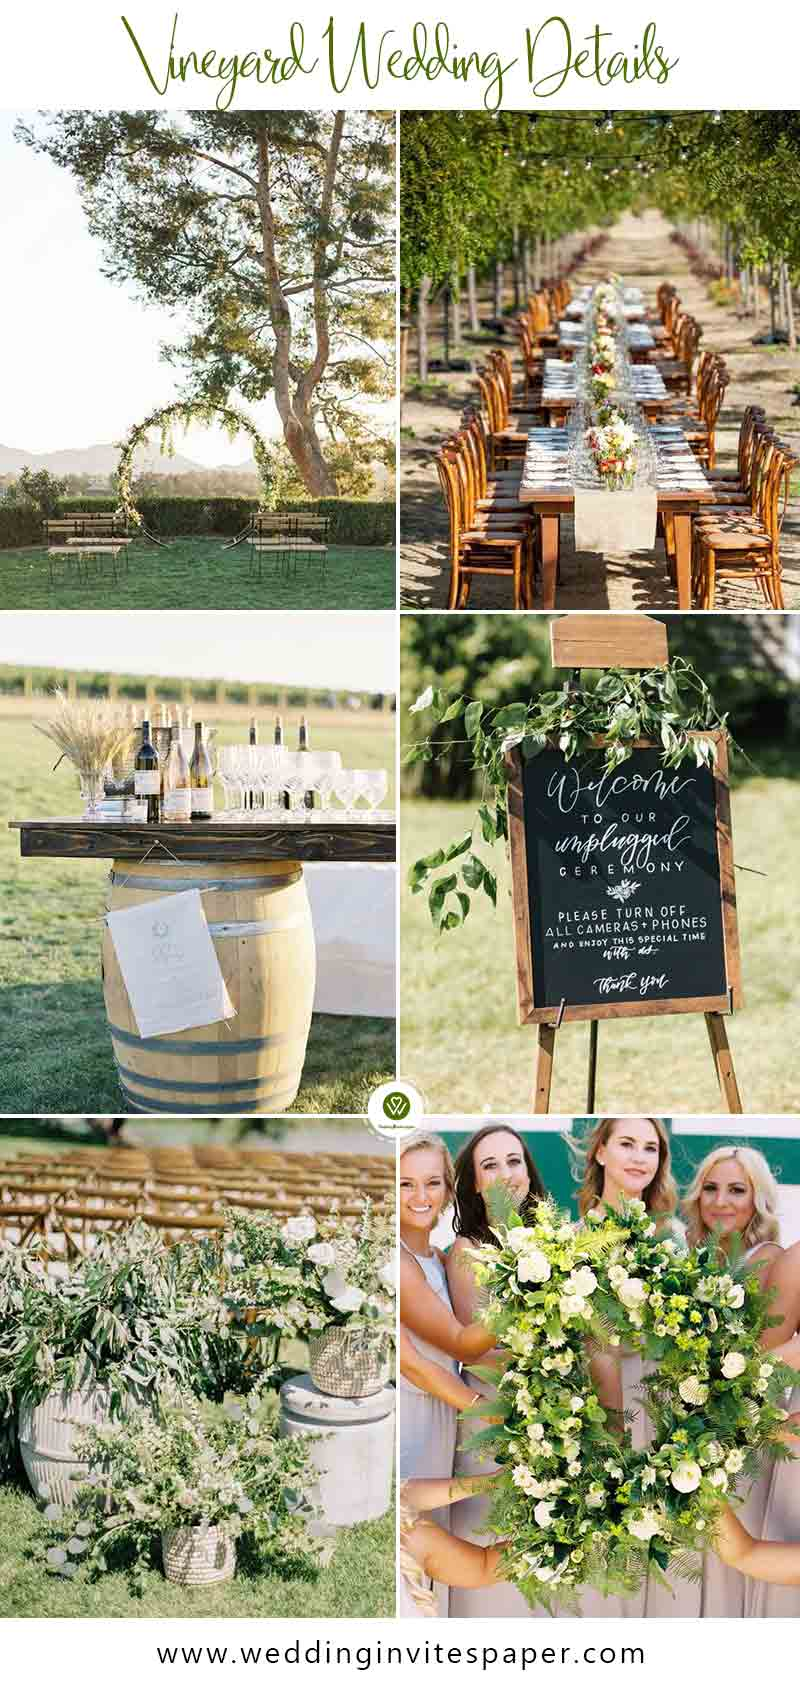 vineyard wedding decorations.jpg